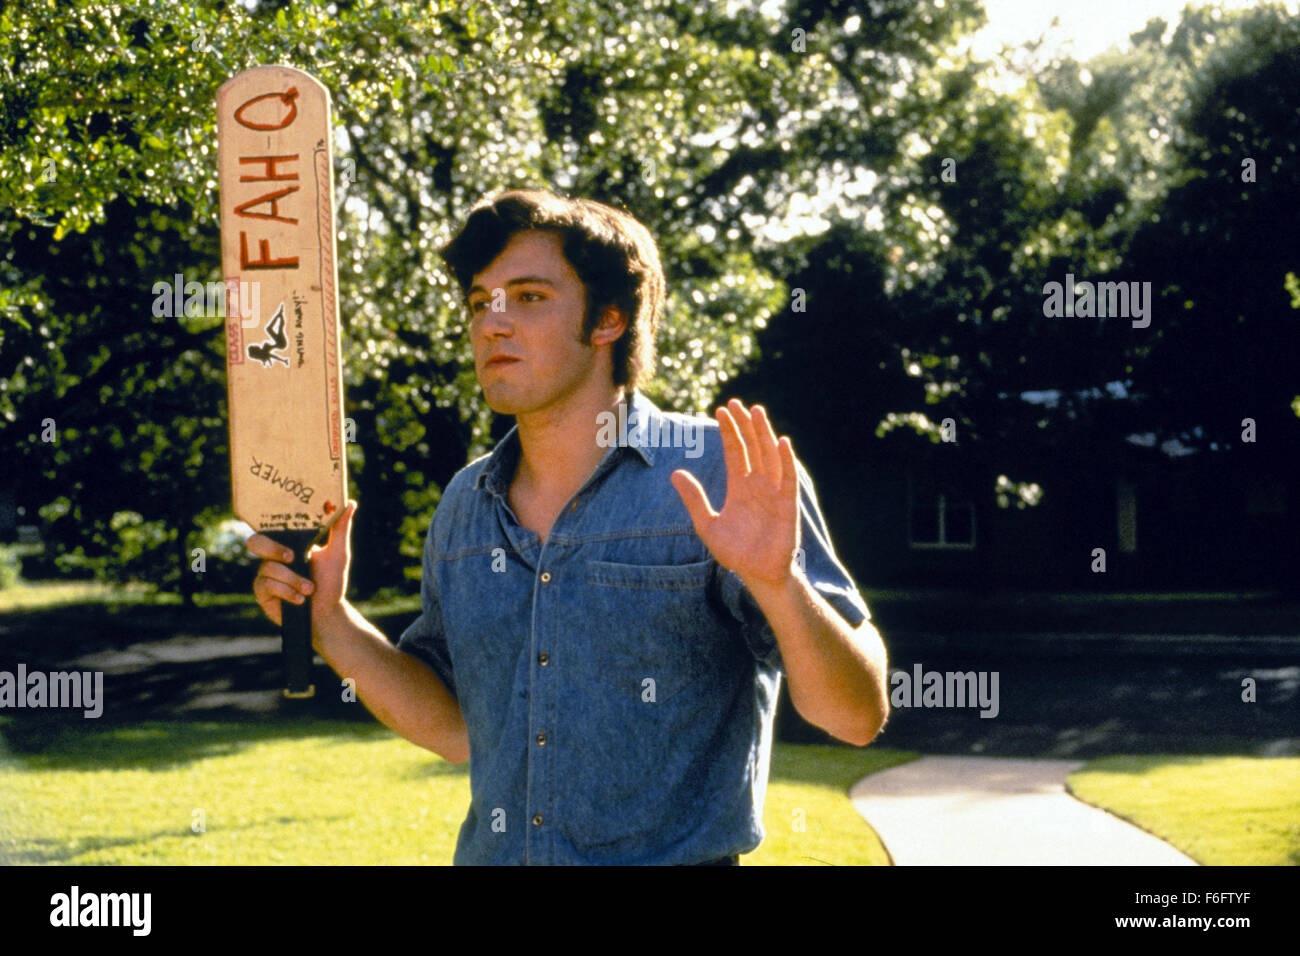 Sep 10, 1993; Austin, TX, USA; BEN AFFLECK stars as Fred O'Bannion in the comedy drama 'Dazed and Confused' directed Stock Photo